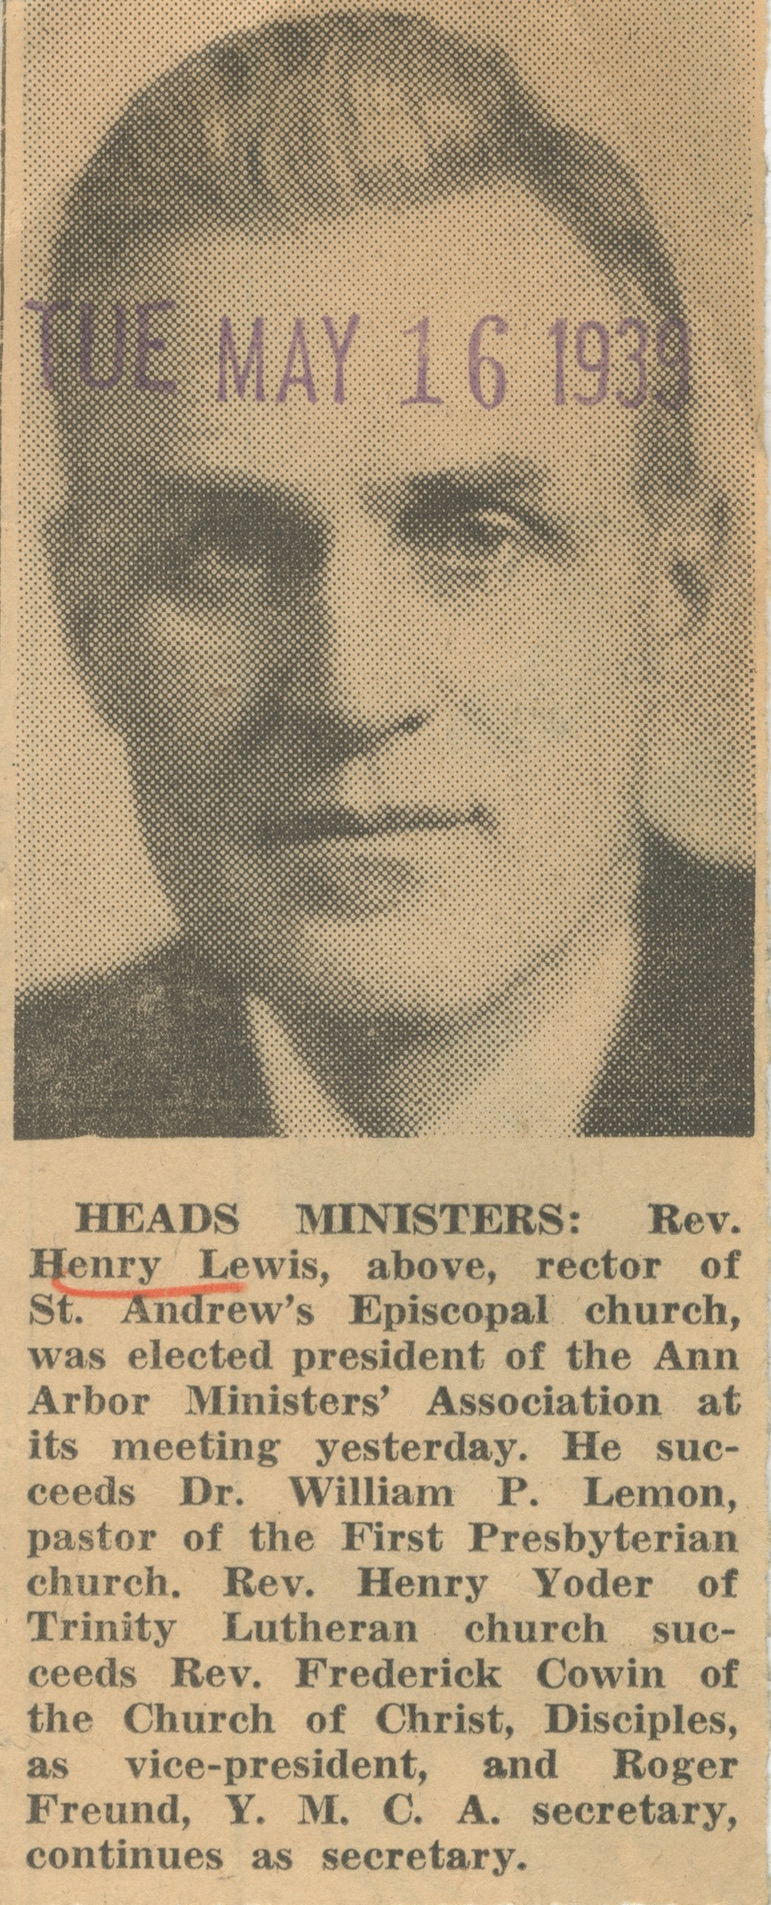 Heads Ministers image